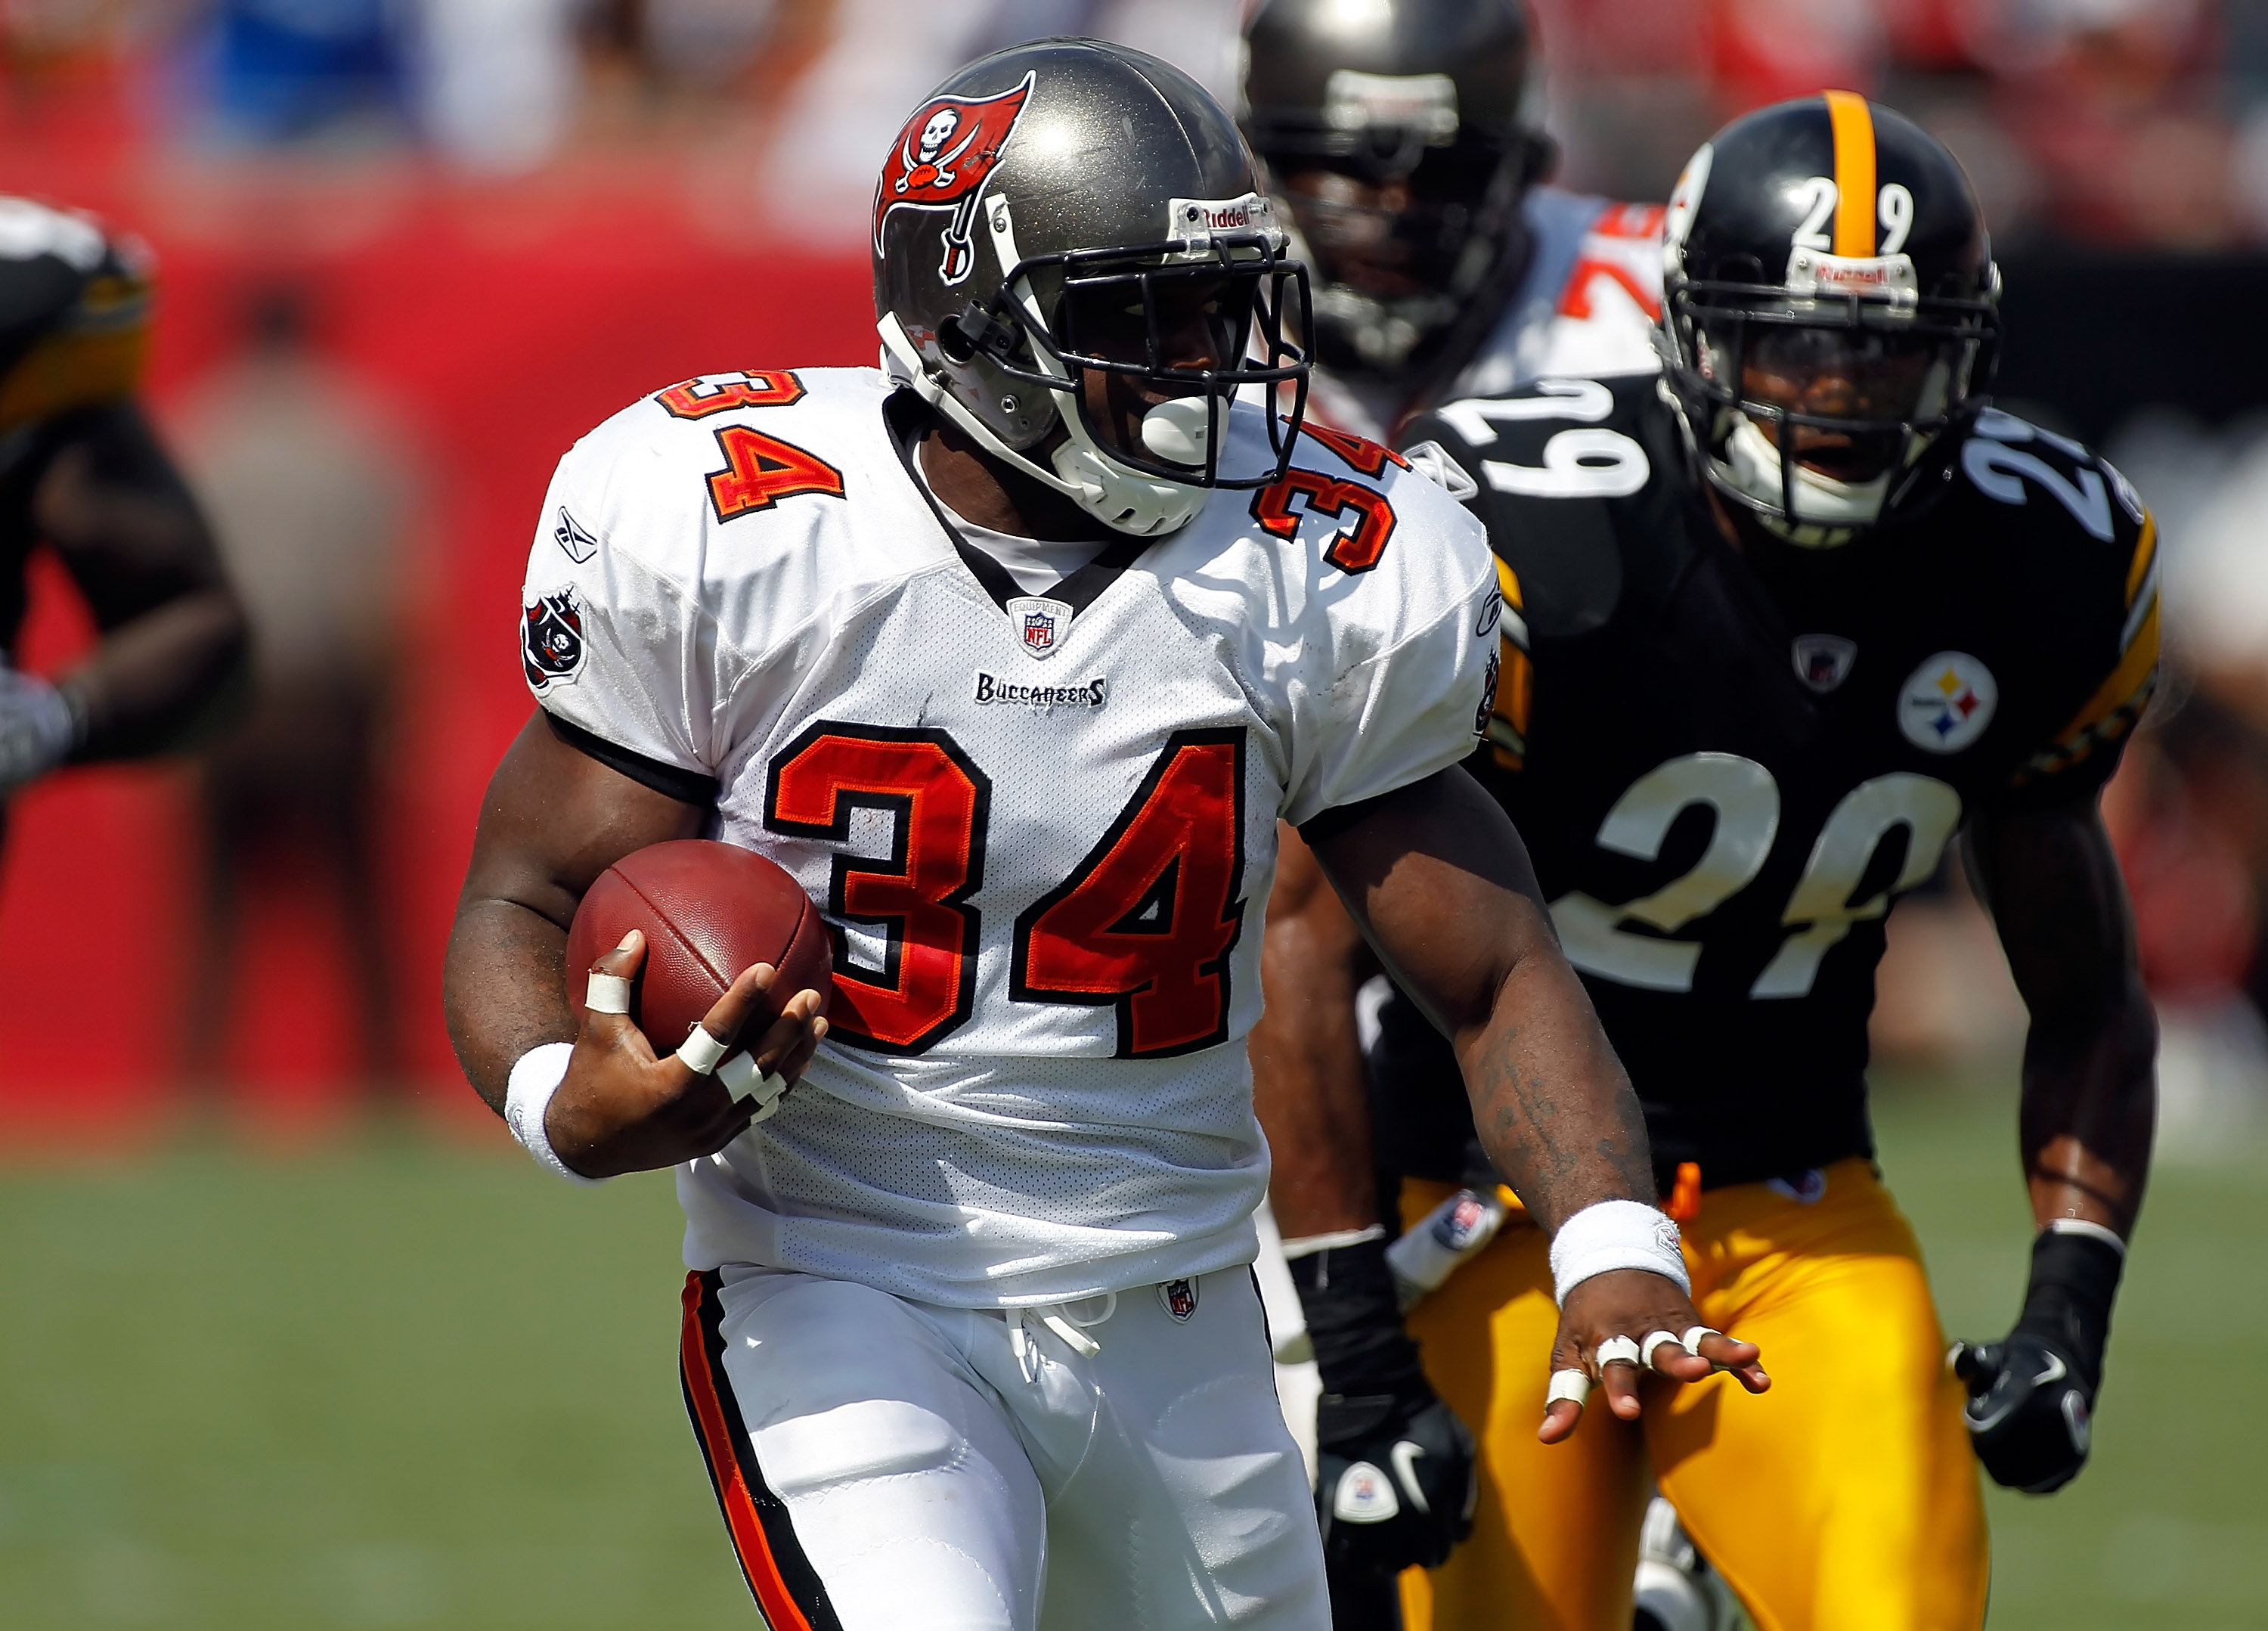 TAMPA, FL - SEPTEMBER 26:  Running back Earnest Graham #34 of the Tampa Bay Buccaneers runs the ball against the Pittsburgh Steelers during the game at Raymond James Stadium on September 26, 2010 in Tampa, Florida.  (Photo by J. Meric/Getty Images)